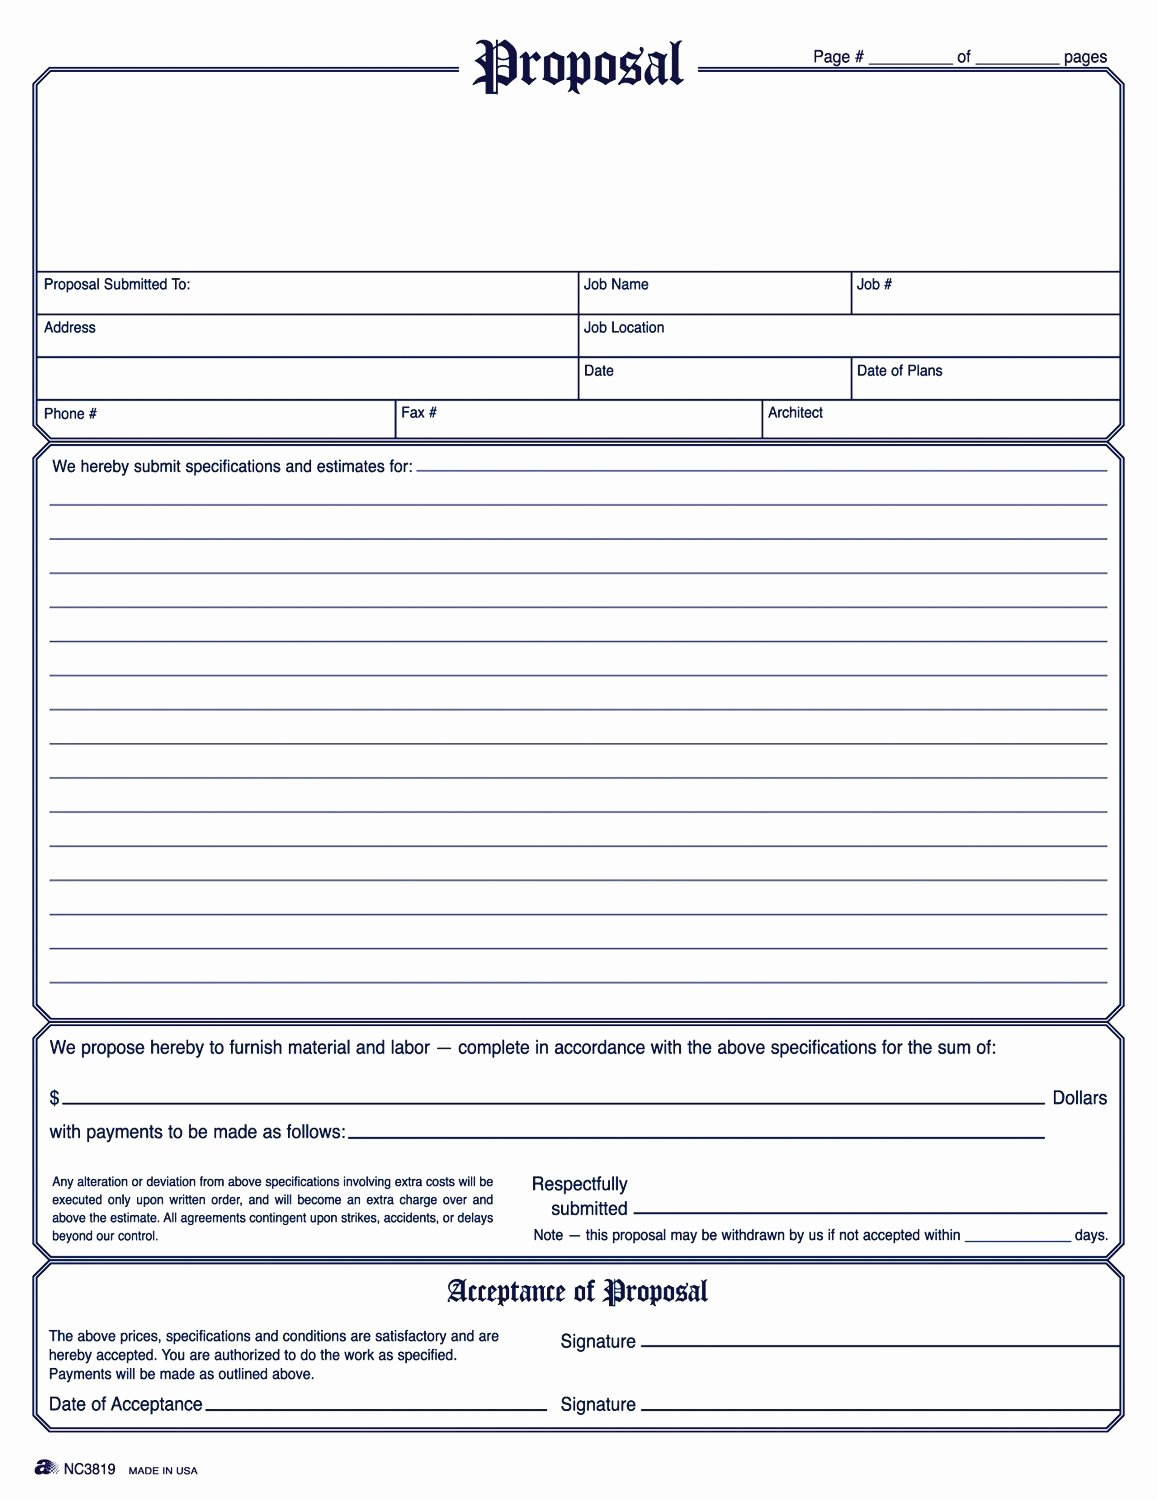 Free Proposal form Template Awesome Free Construction Proposal Template Business Receipt Word